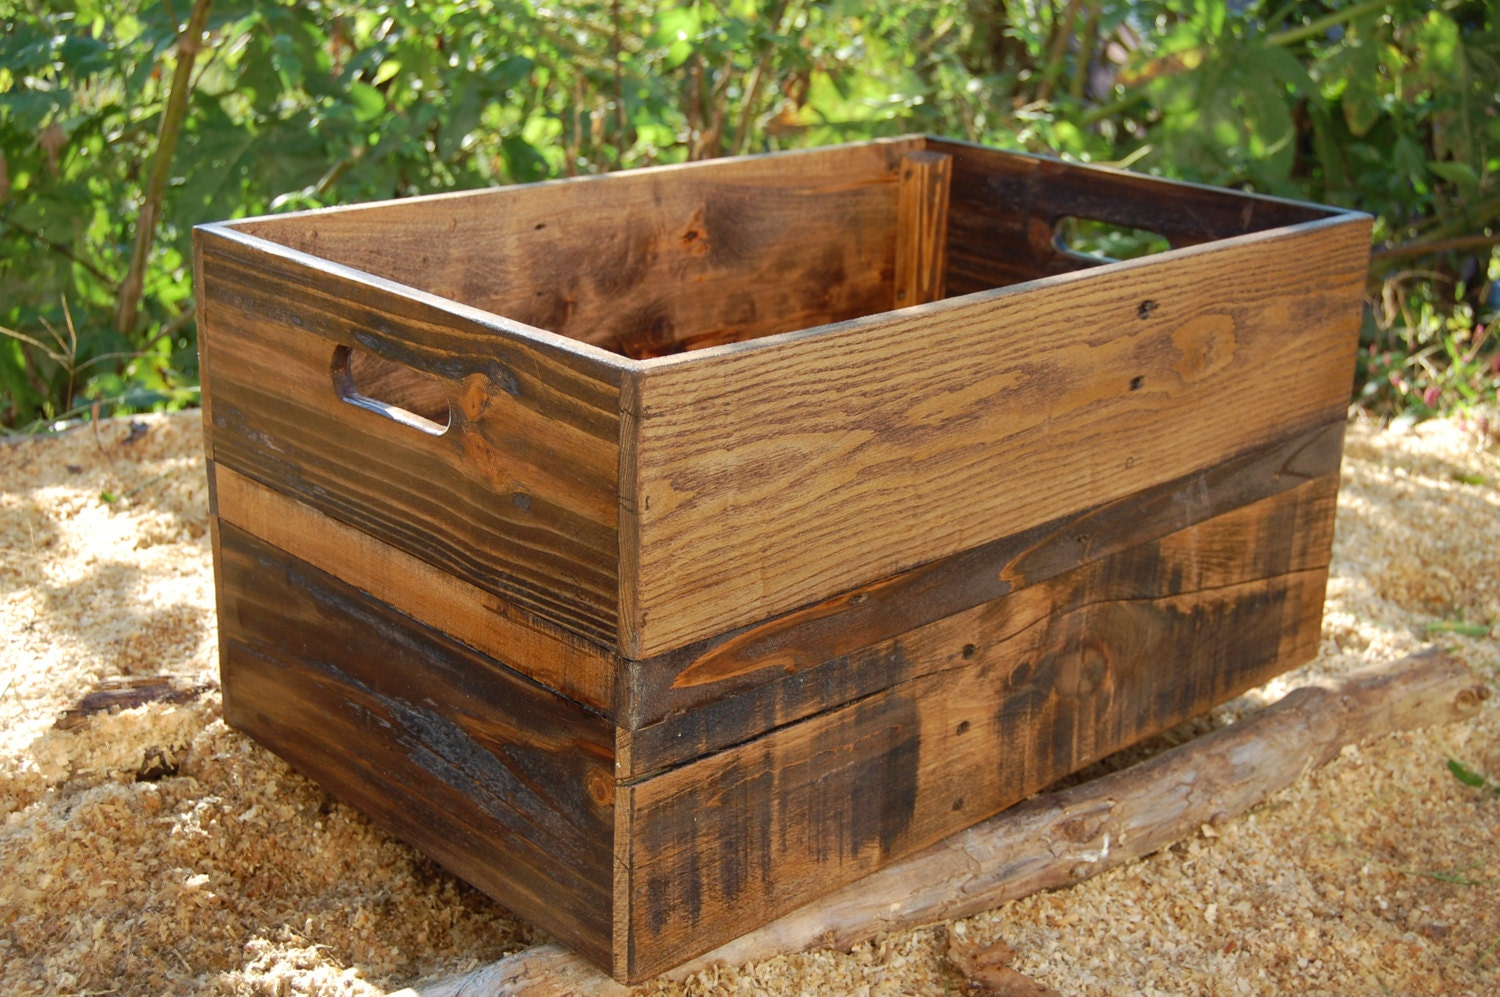 Large Provincial Wood Crate Toy Storage Reclaimed Wood